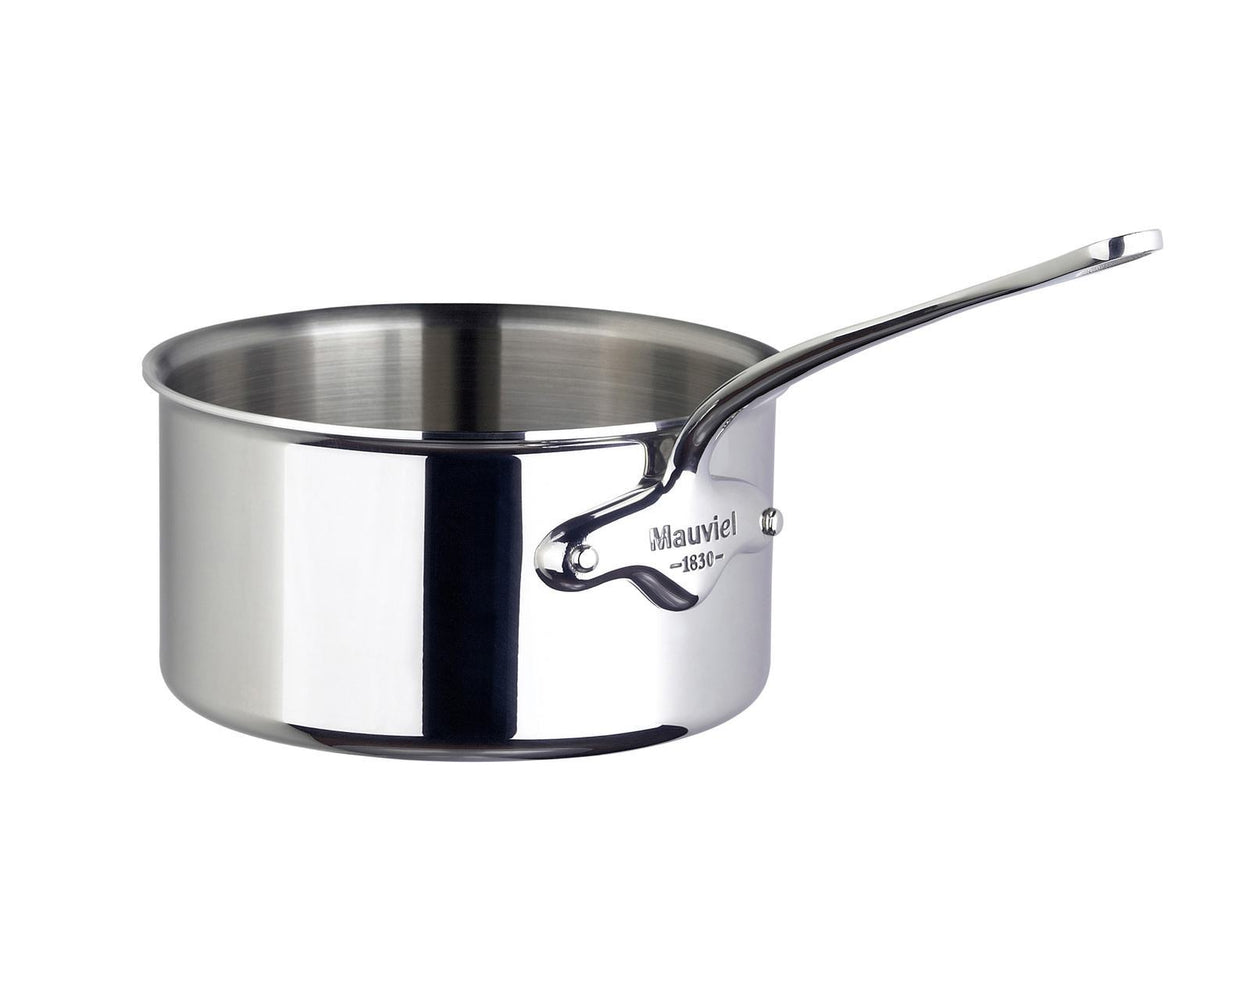 mauviel cook style kasserolle stal 2 5 liter o18cm h10cm